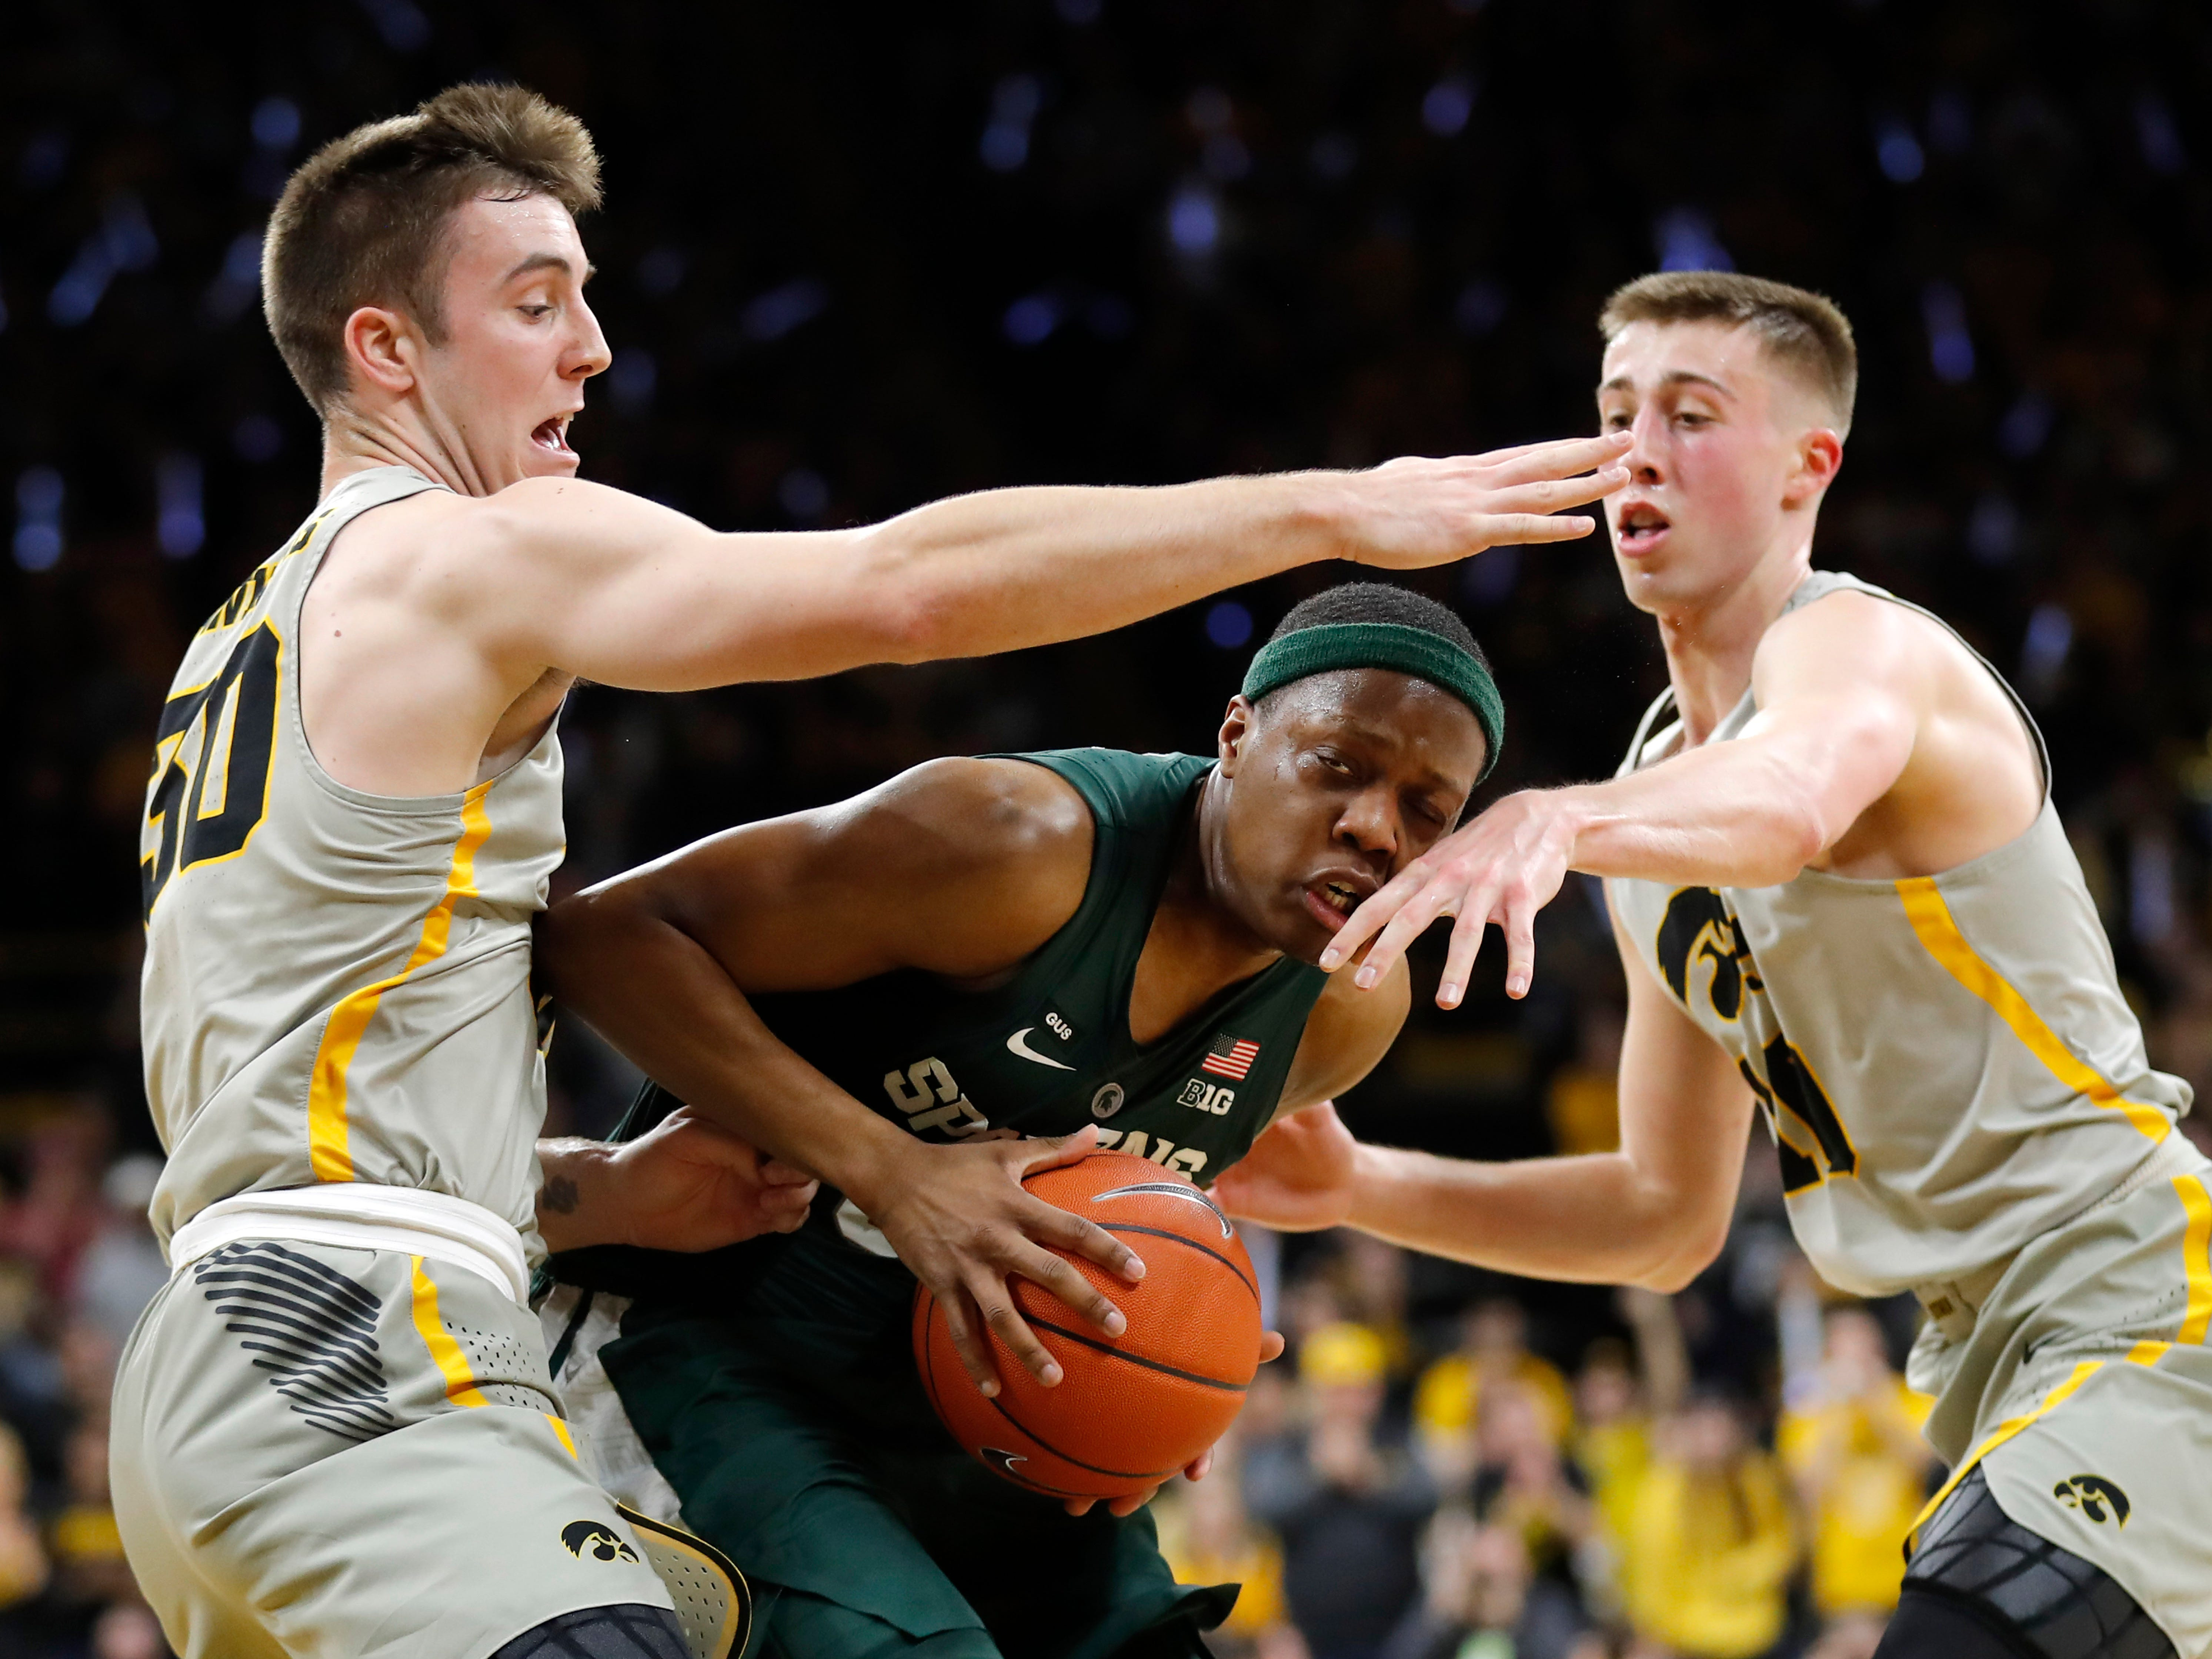 Michigan State guard Cassius Winston, center, drives between Iowa's Connor McCaffery, left, and Joe Wieskamp, right, during the first half of an NCAA college basketball game Thursday, Jan. 24, 2019, in Iowa City, Iowa.